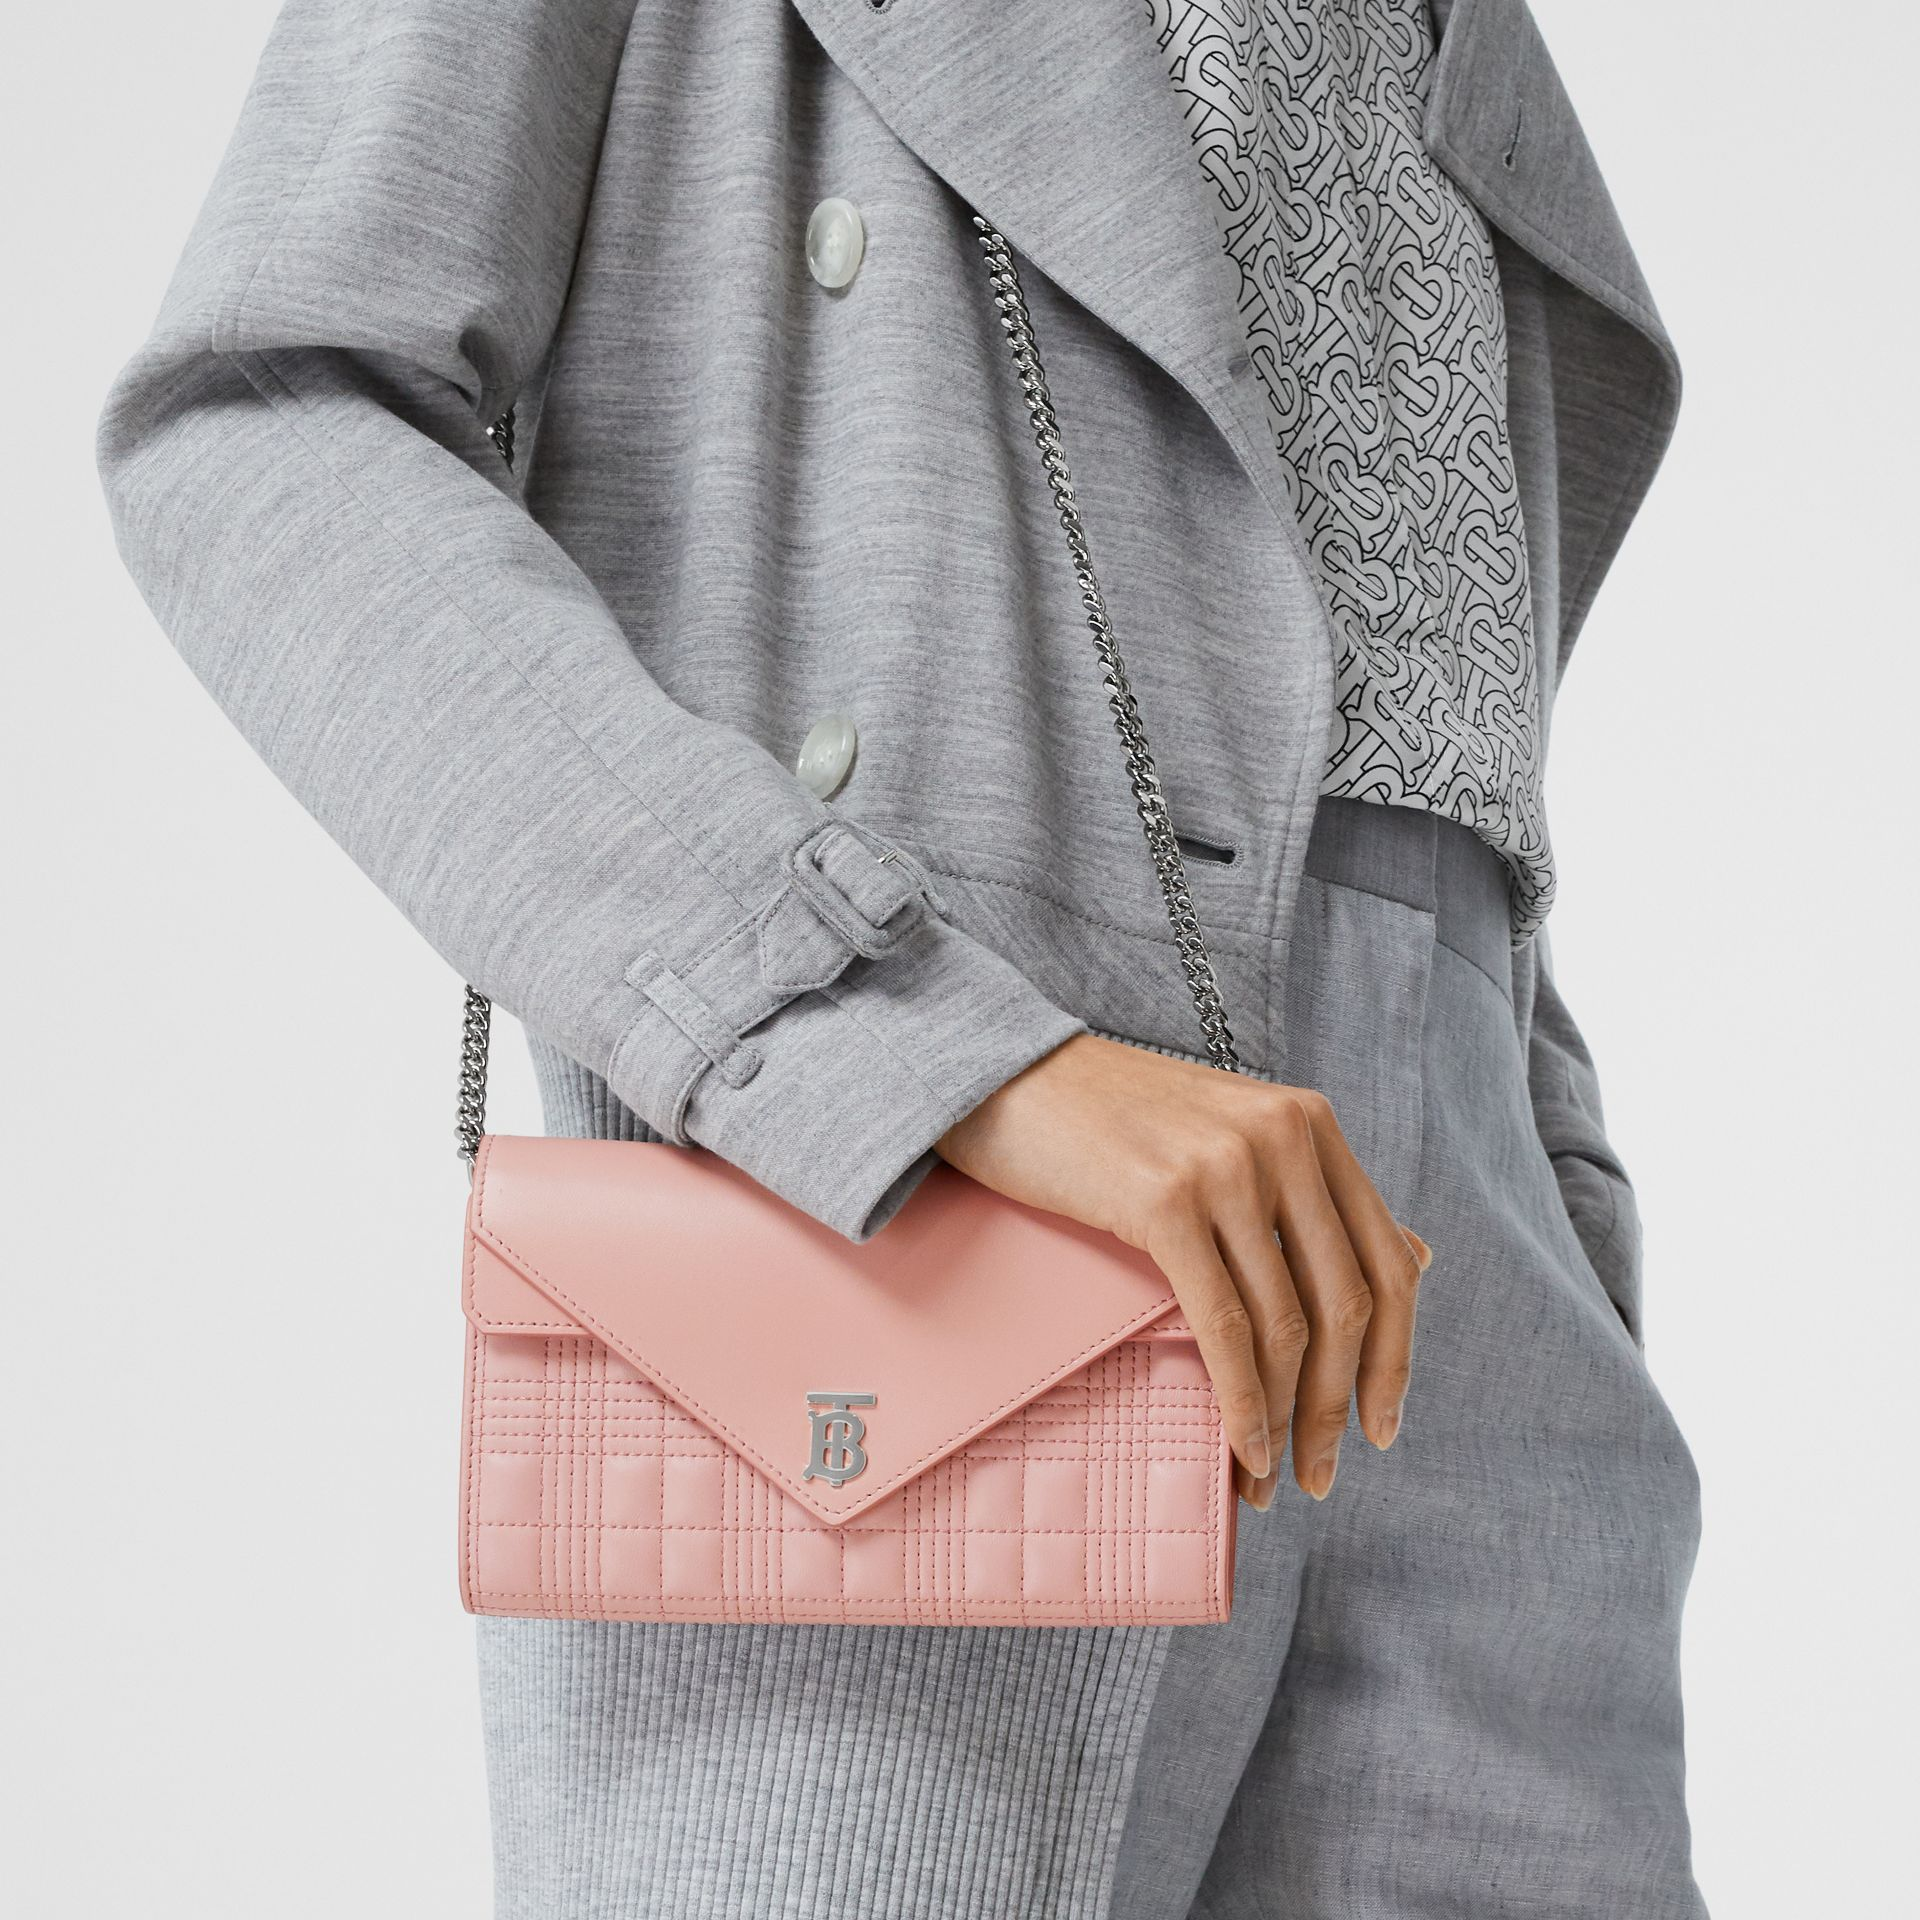 Quilted Lambskin Wallet with Detachable Chain Strap in Blush Pink - Women | Burberry - gallery image 9